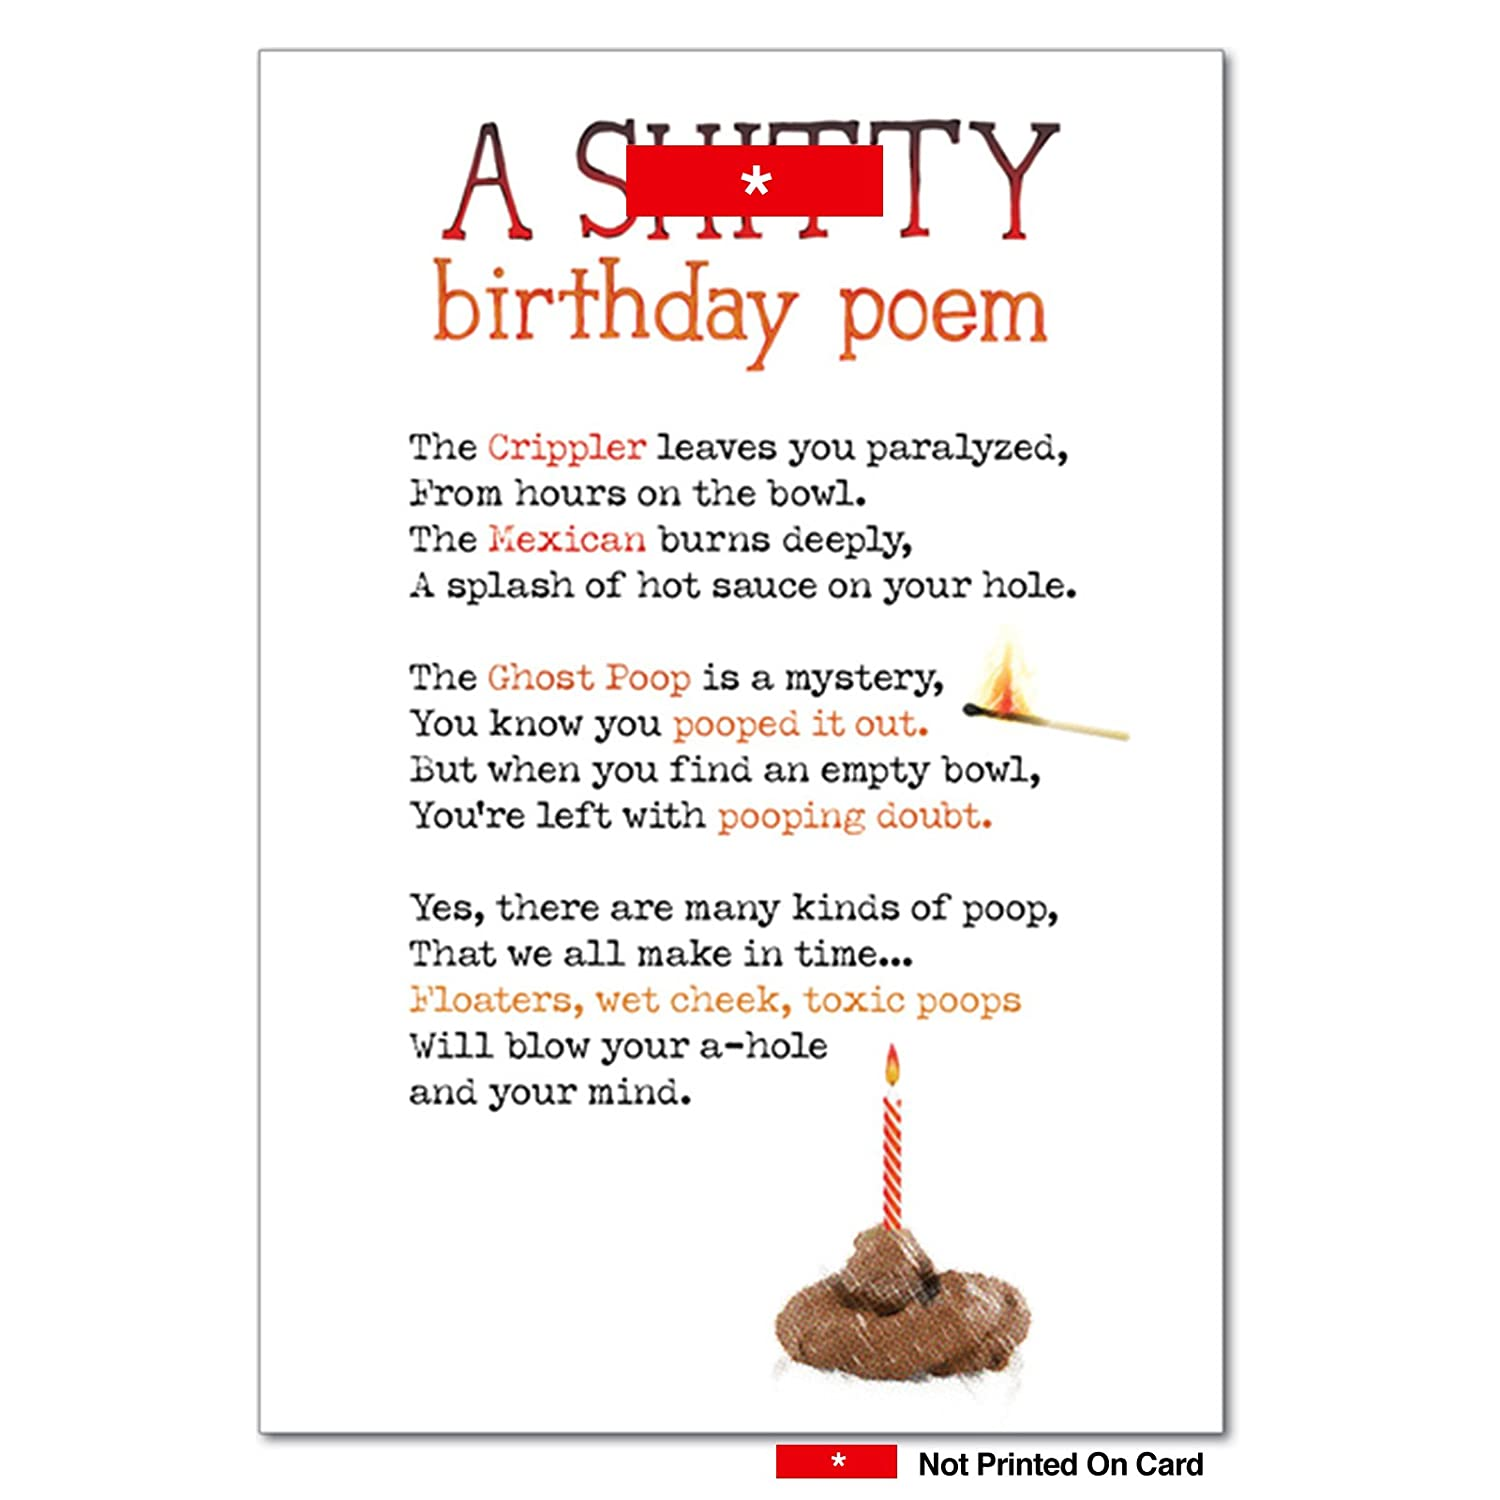 Shitty Poem Birthday Humor Card Amazoncouk Office Products